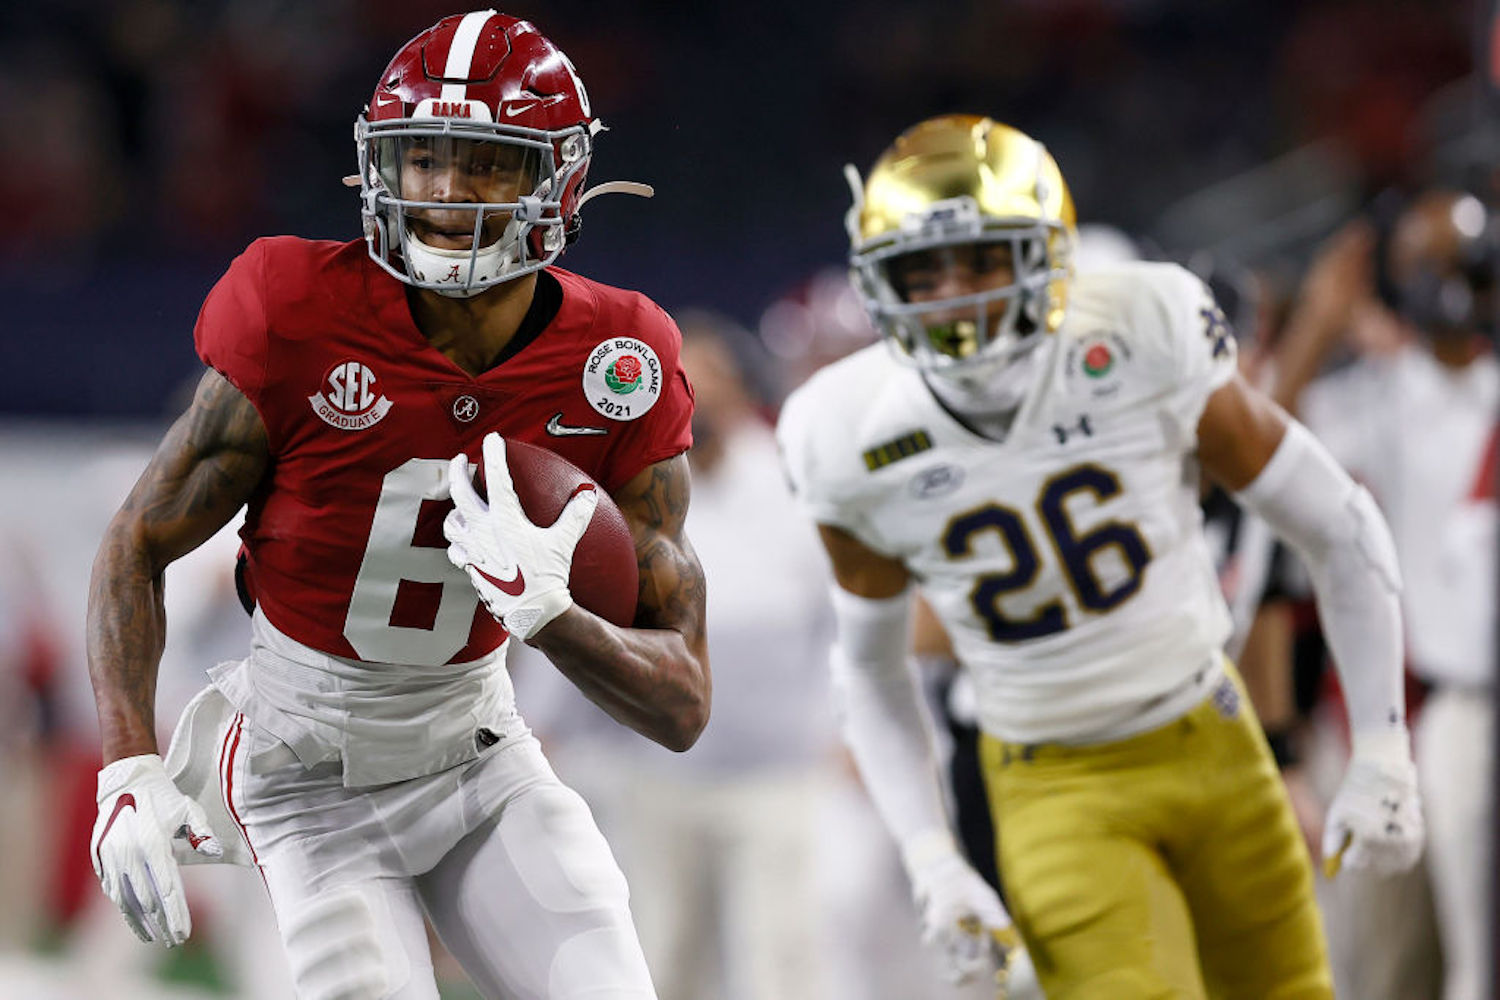 Alabama's Devonta Smith is the favorite to win the 2020 Heisman Trophy. Who was the last wide receiver to win the award and when was it?